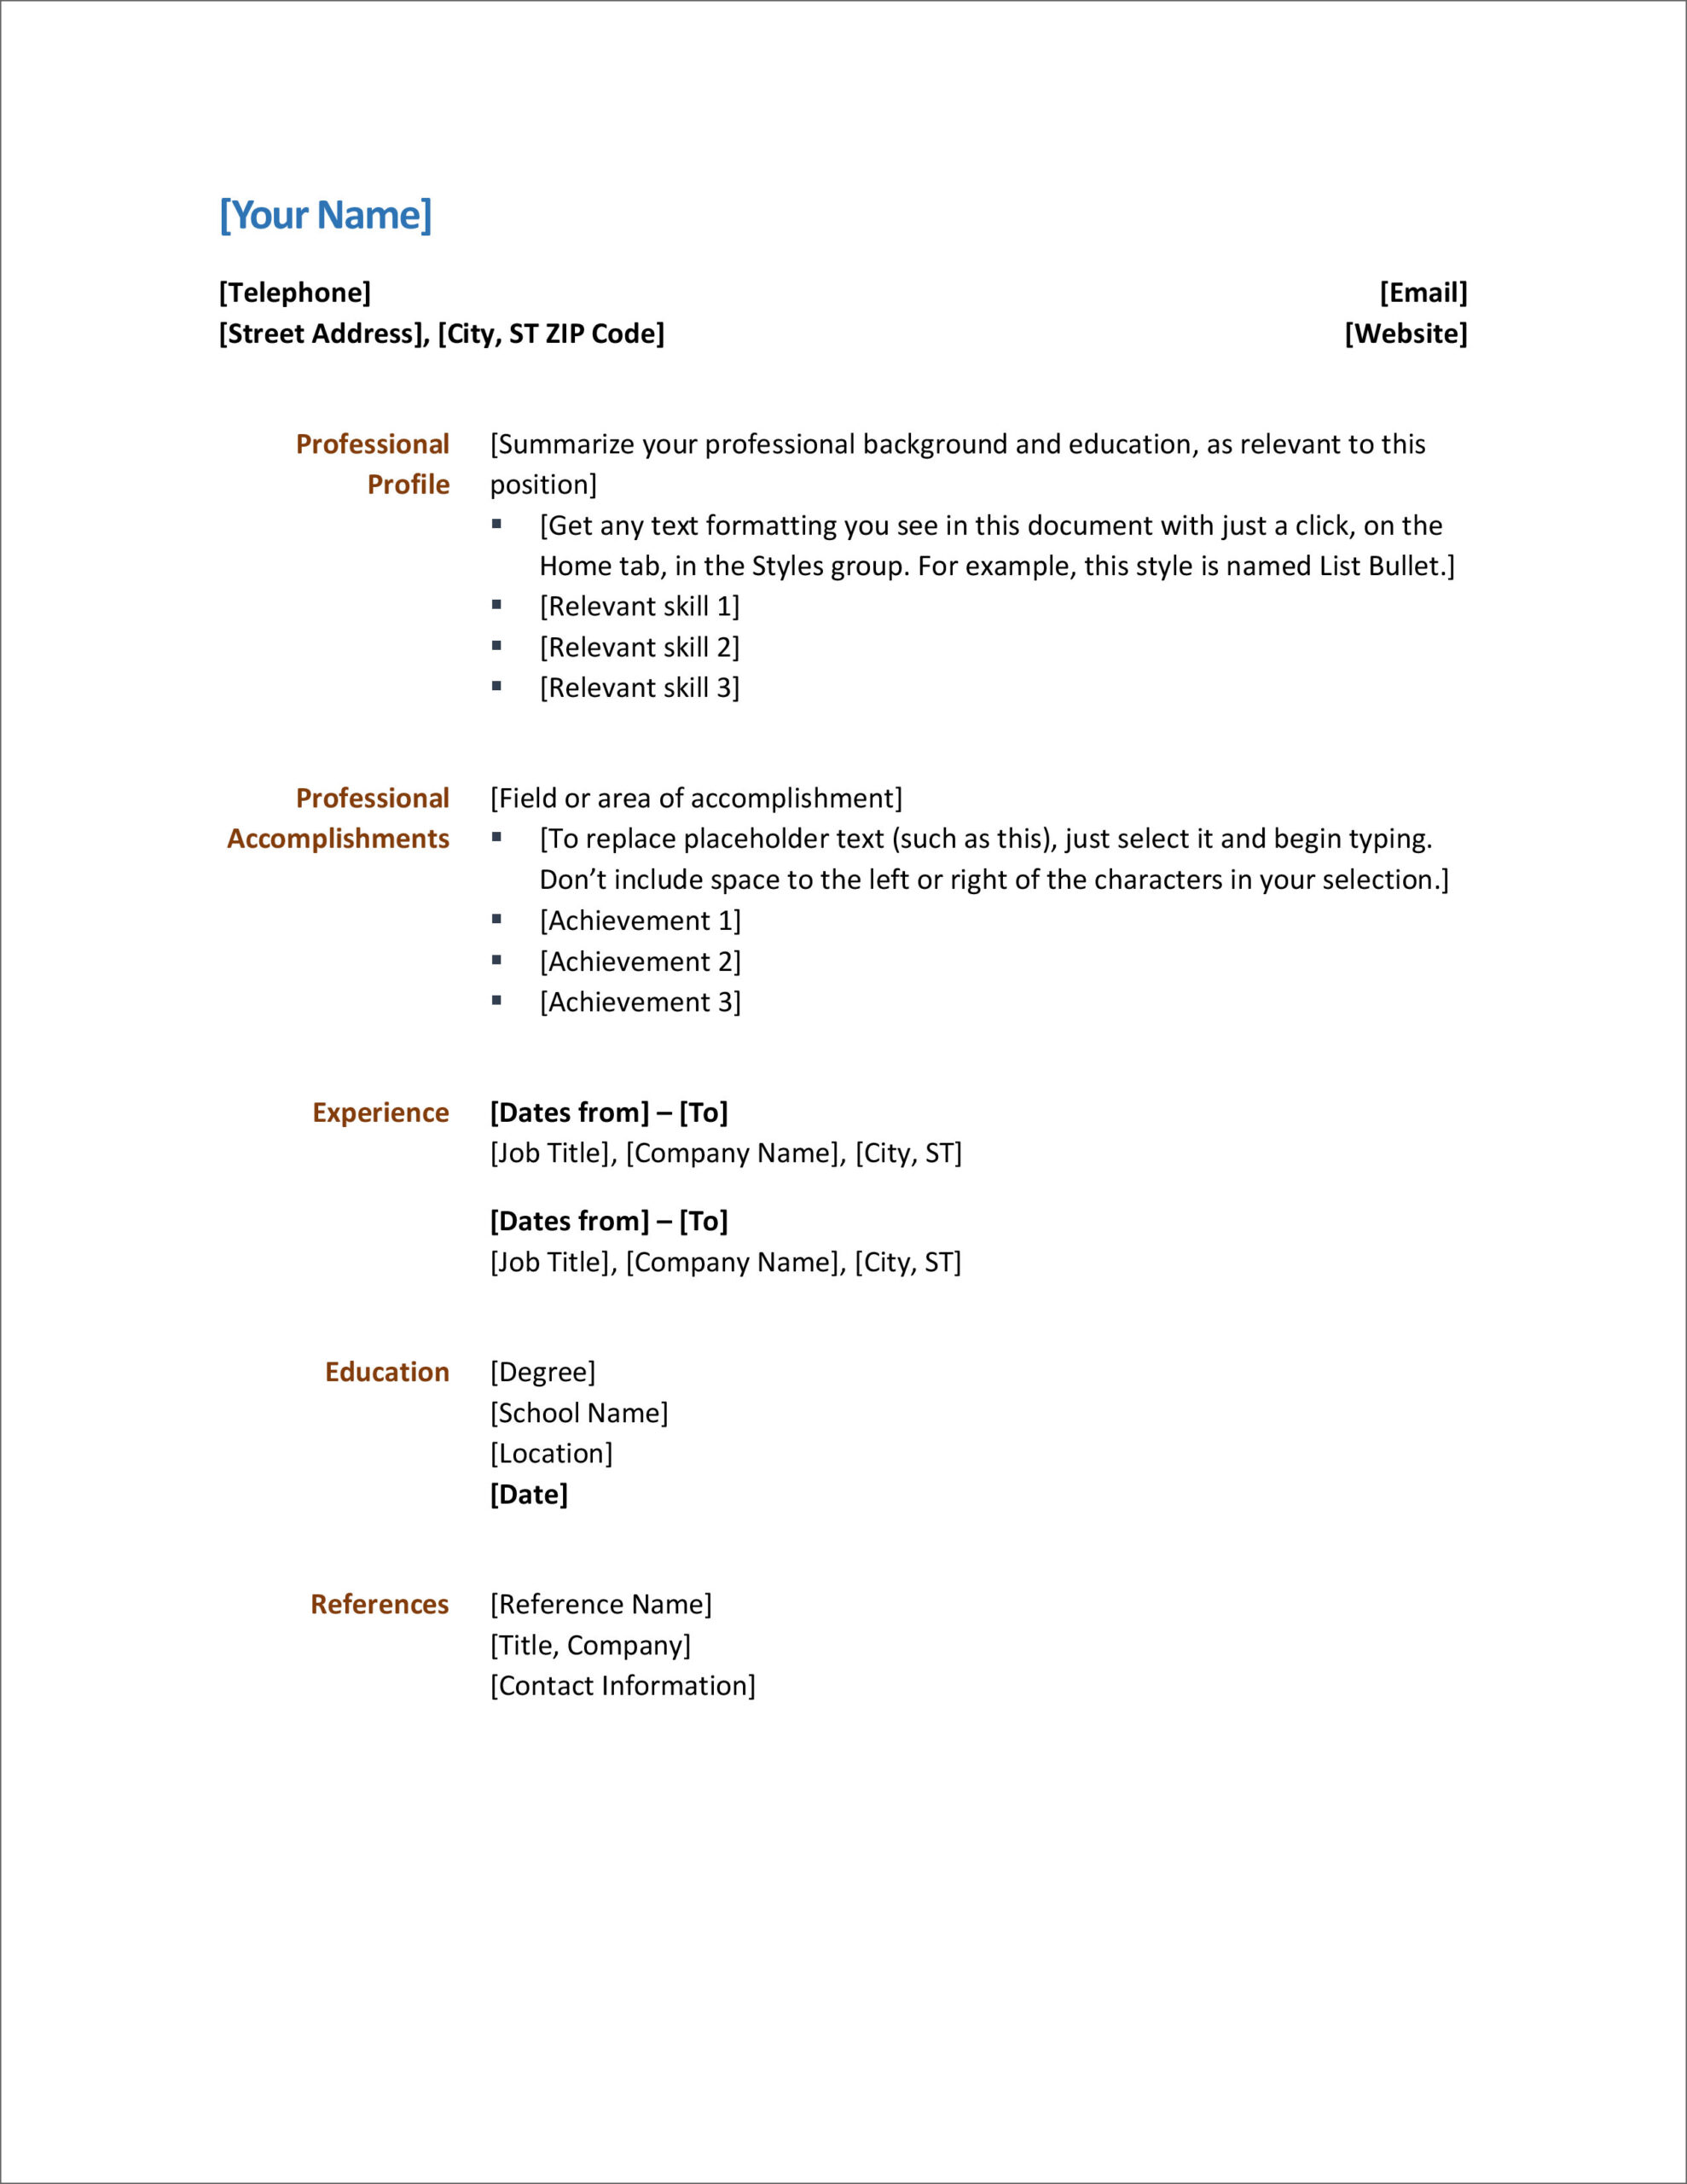 free modern resume cv templates minimalist simple clean design professional template Resume Download Professional Resume Template Microsoft Word